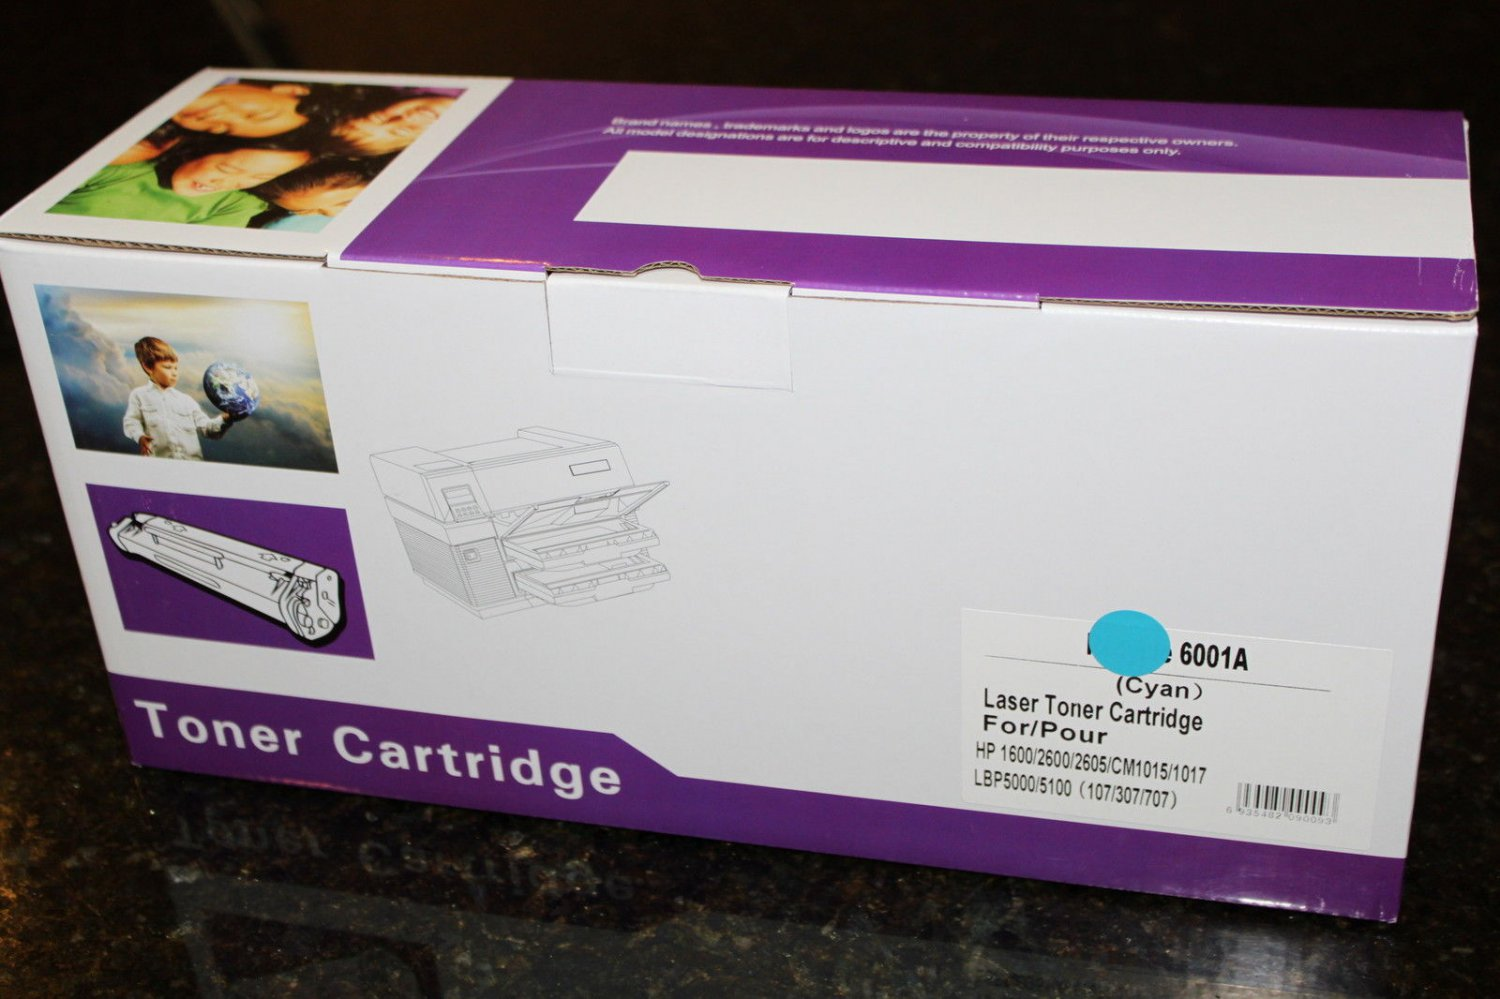 124A Cyan Toner Cartridge Q6001A for HP LaserJet 1600 2600n 2605 CM1015 CM1017